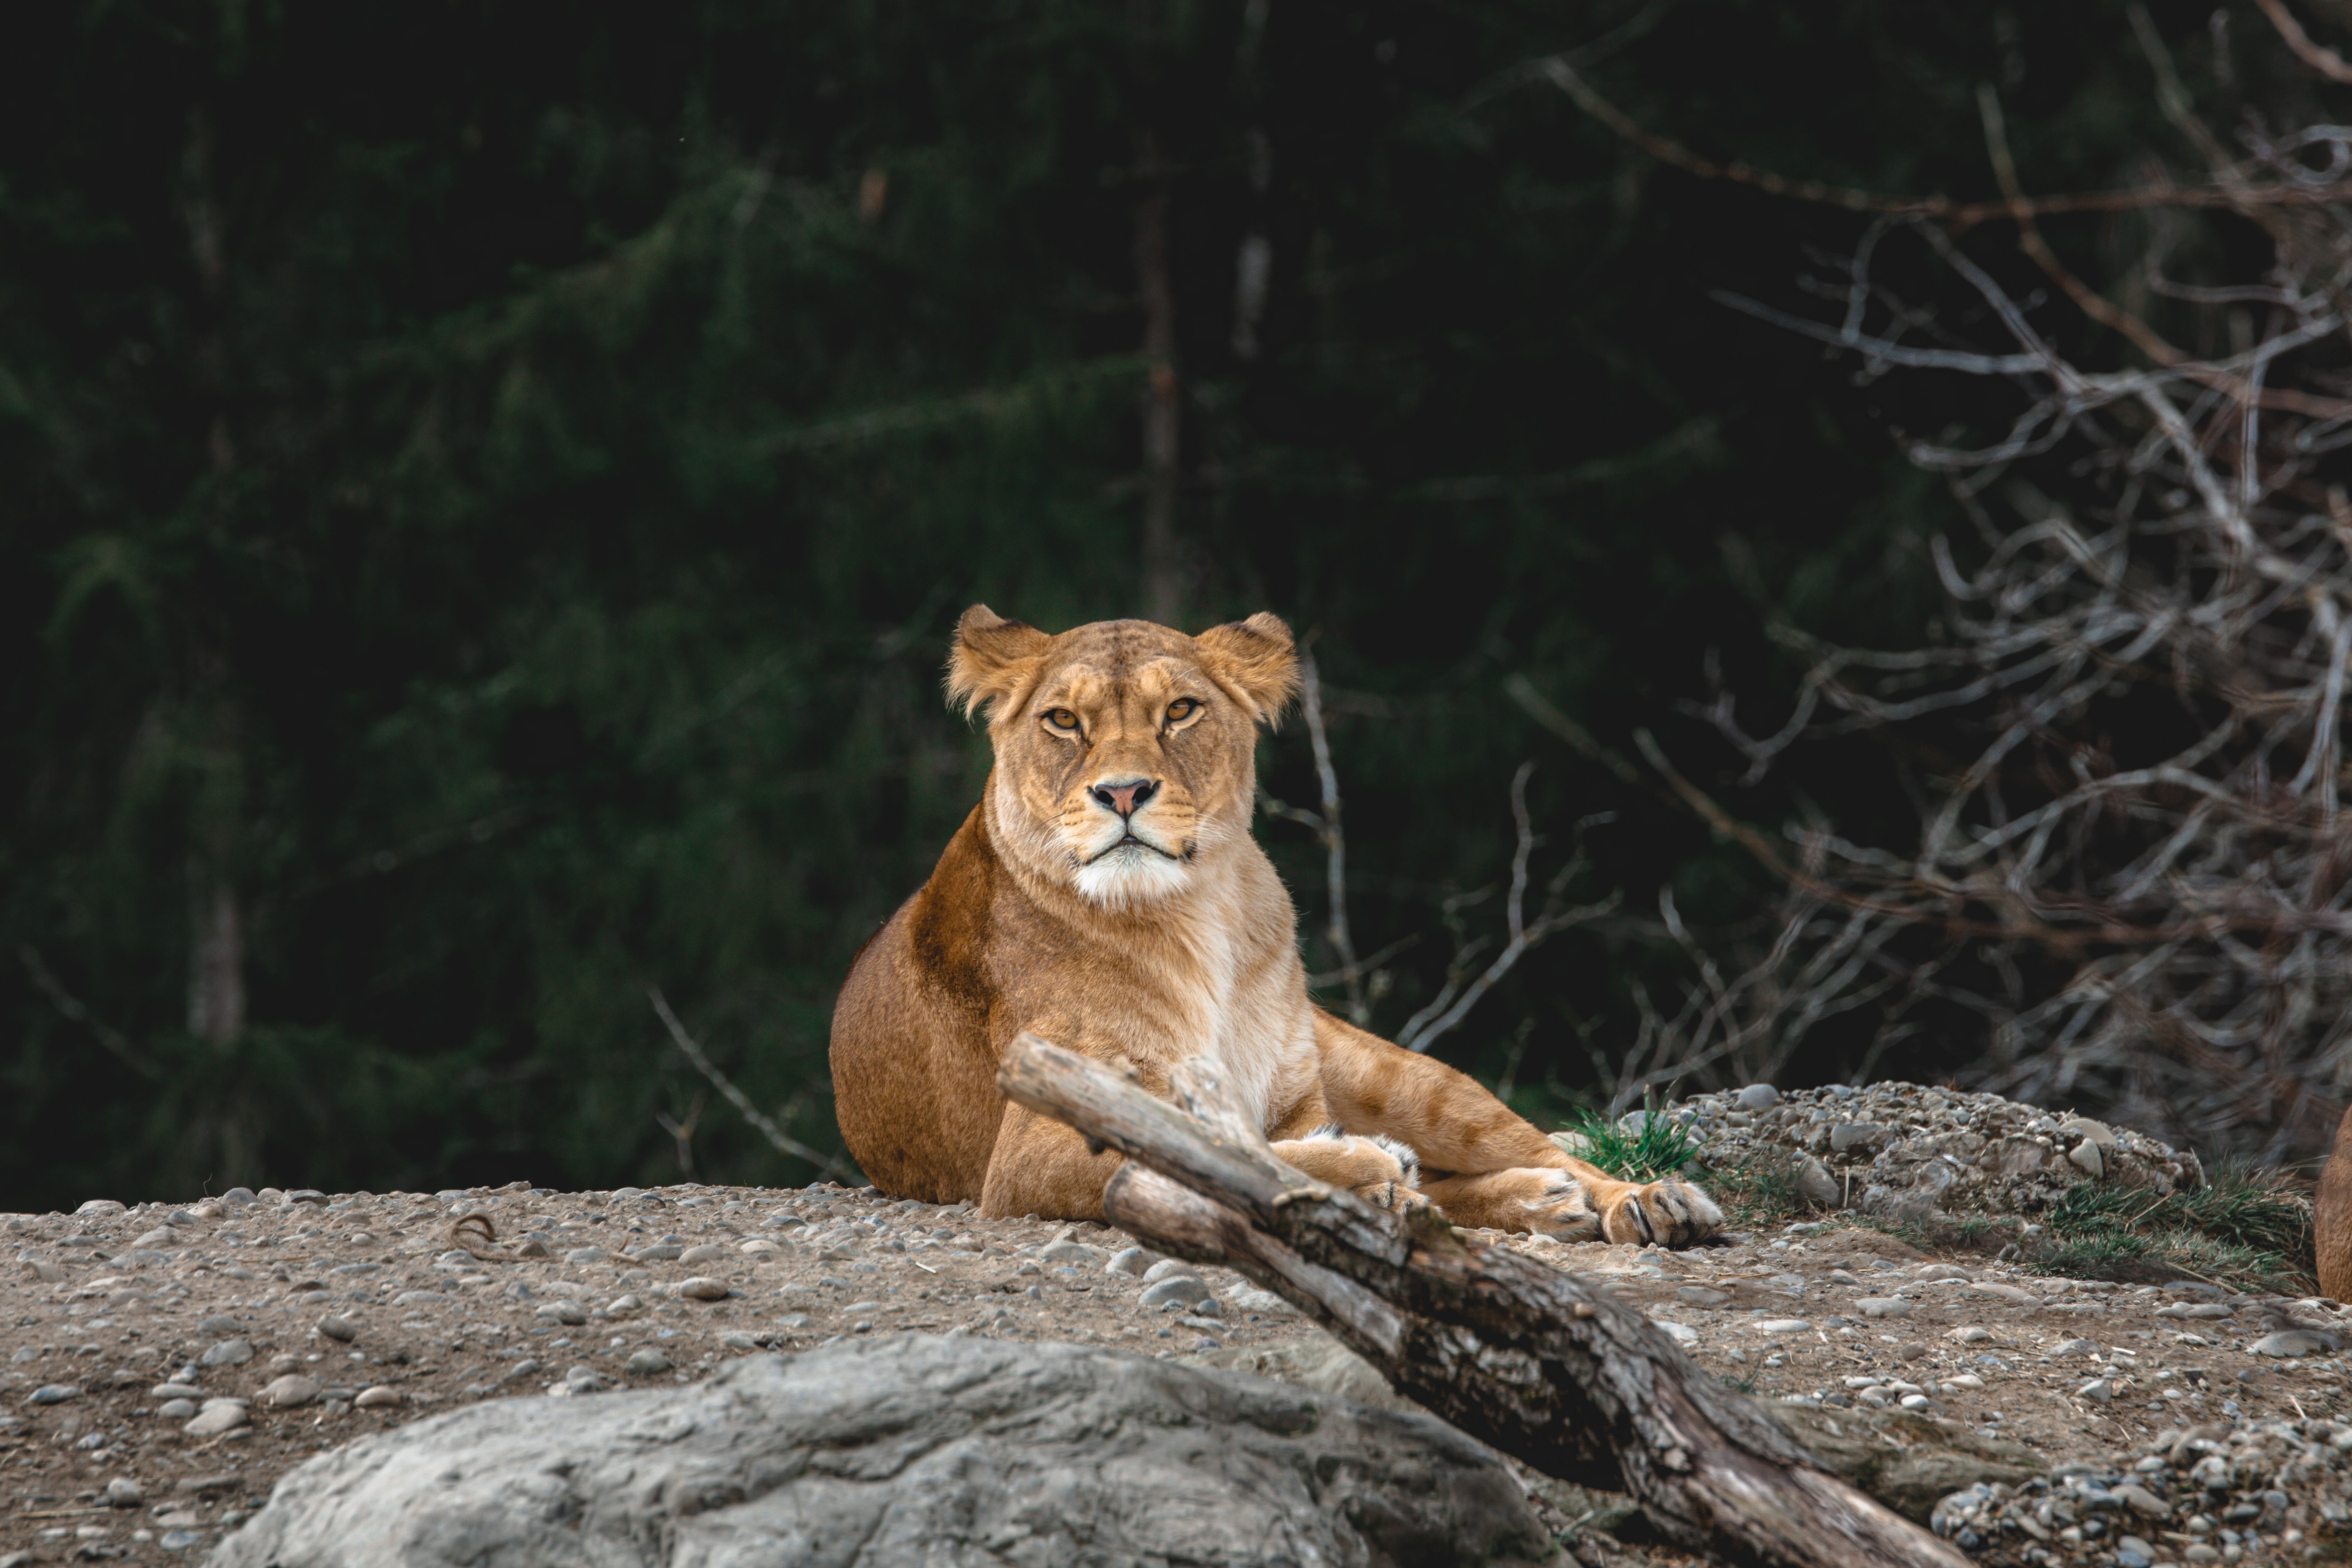 149693 download wallpaper Animals, Lioness, Predator, Sight, Opinion, Animal, Big Cat screensavers and pictures for free